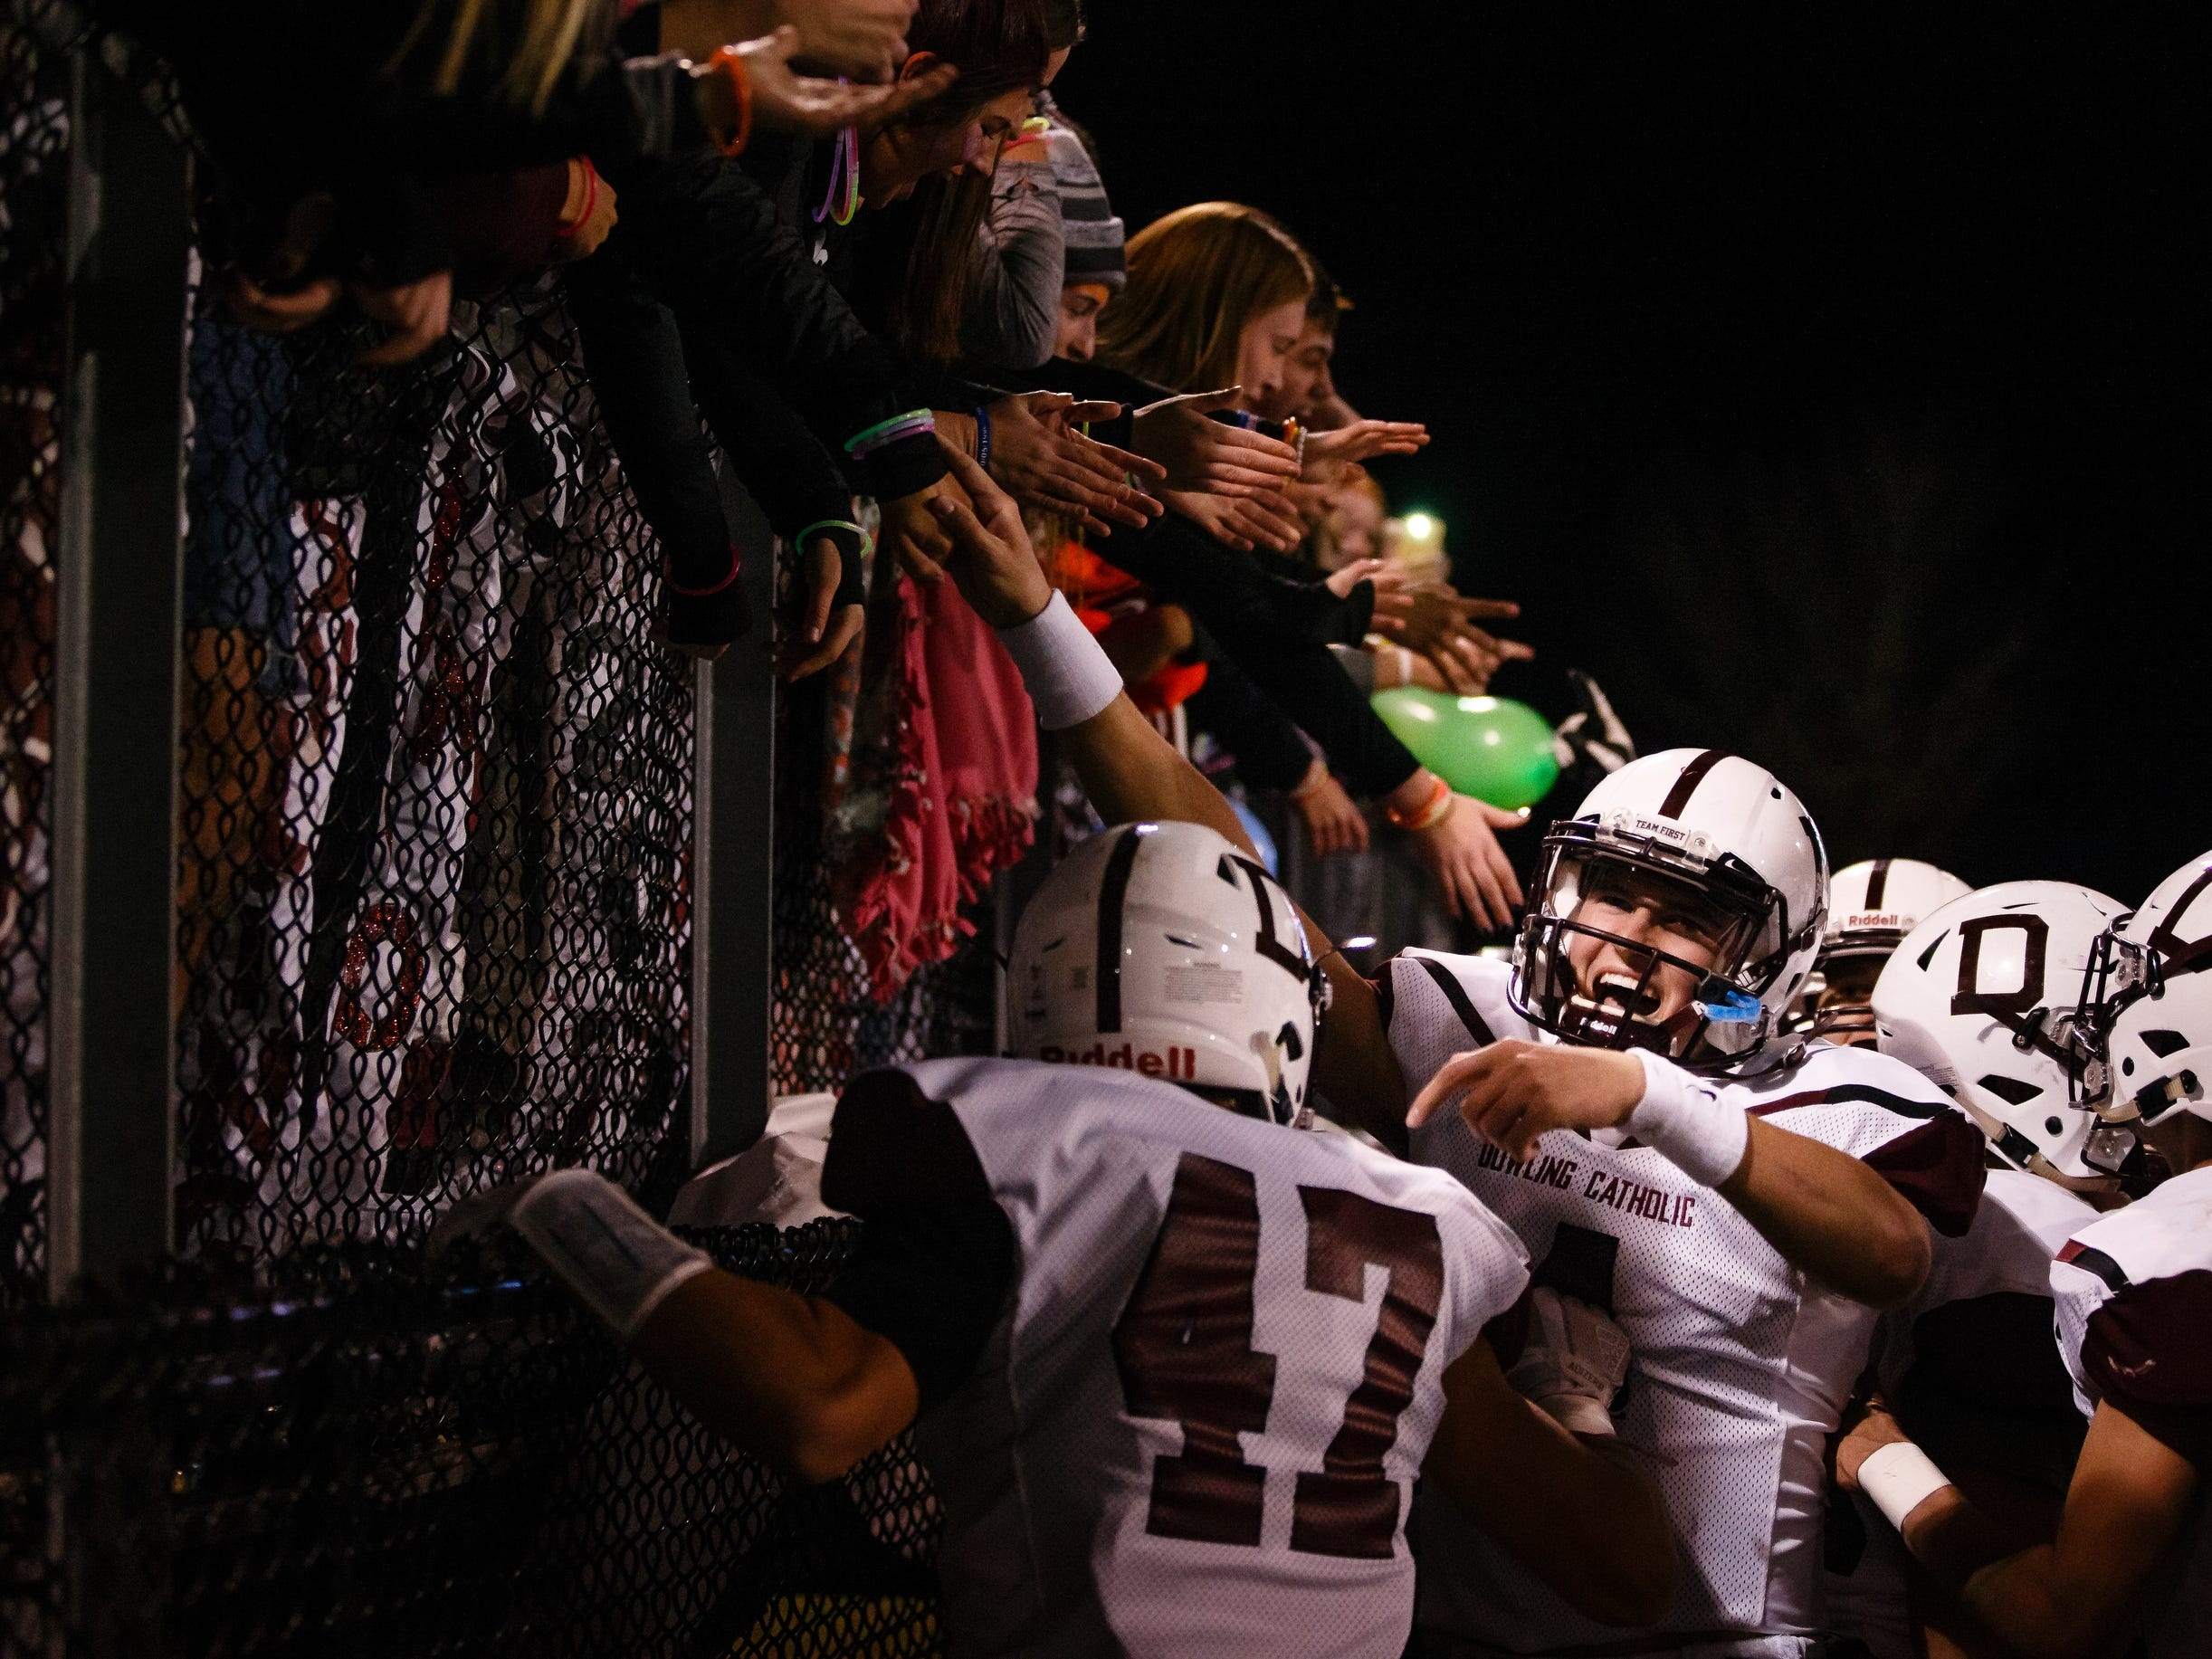 Dowling Catholic players celebrate with their fan section after defeating Valley 31-9 to advance to the semi-finals on Friday, Nov. 2, 2018, in West Des Moines.